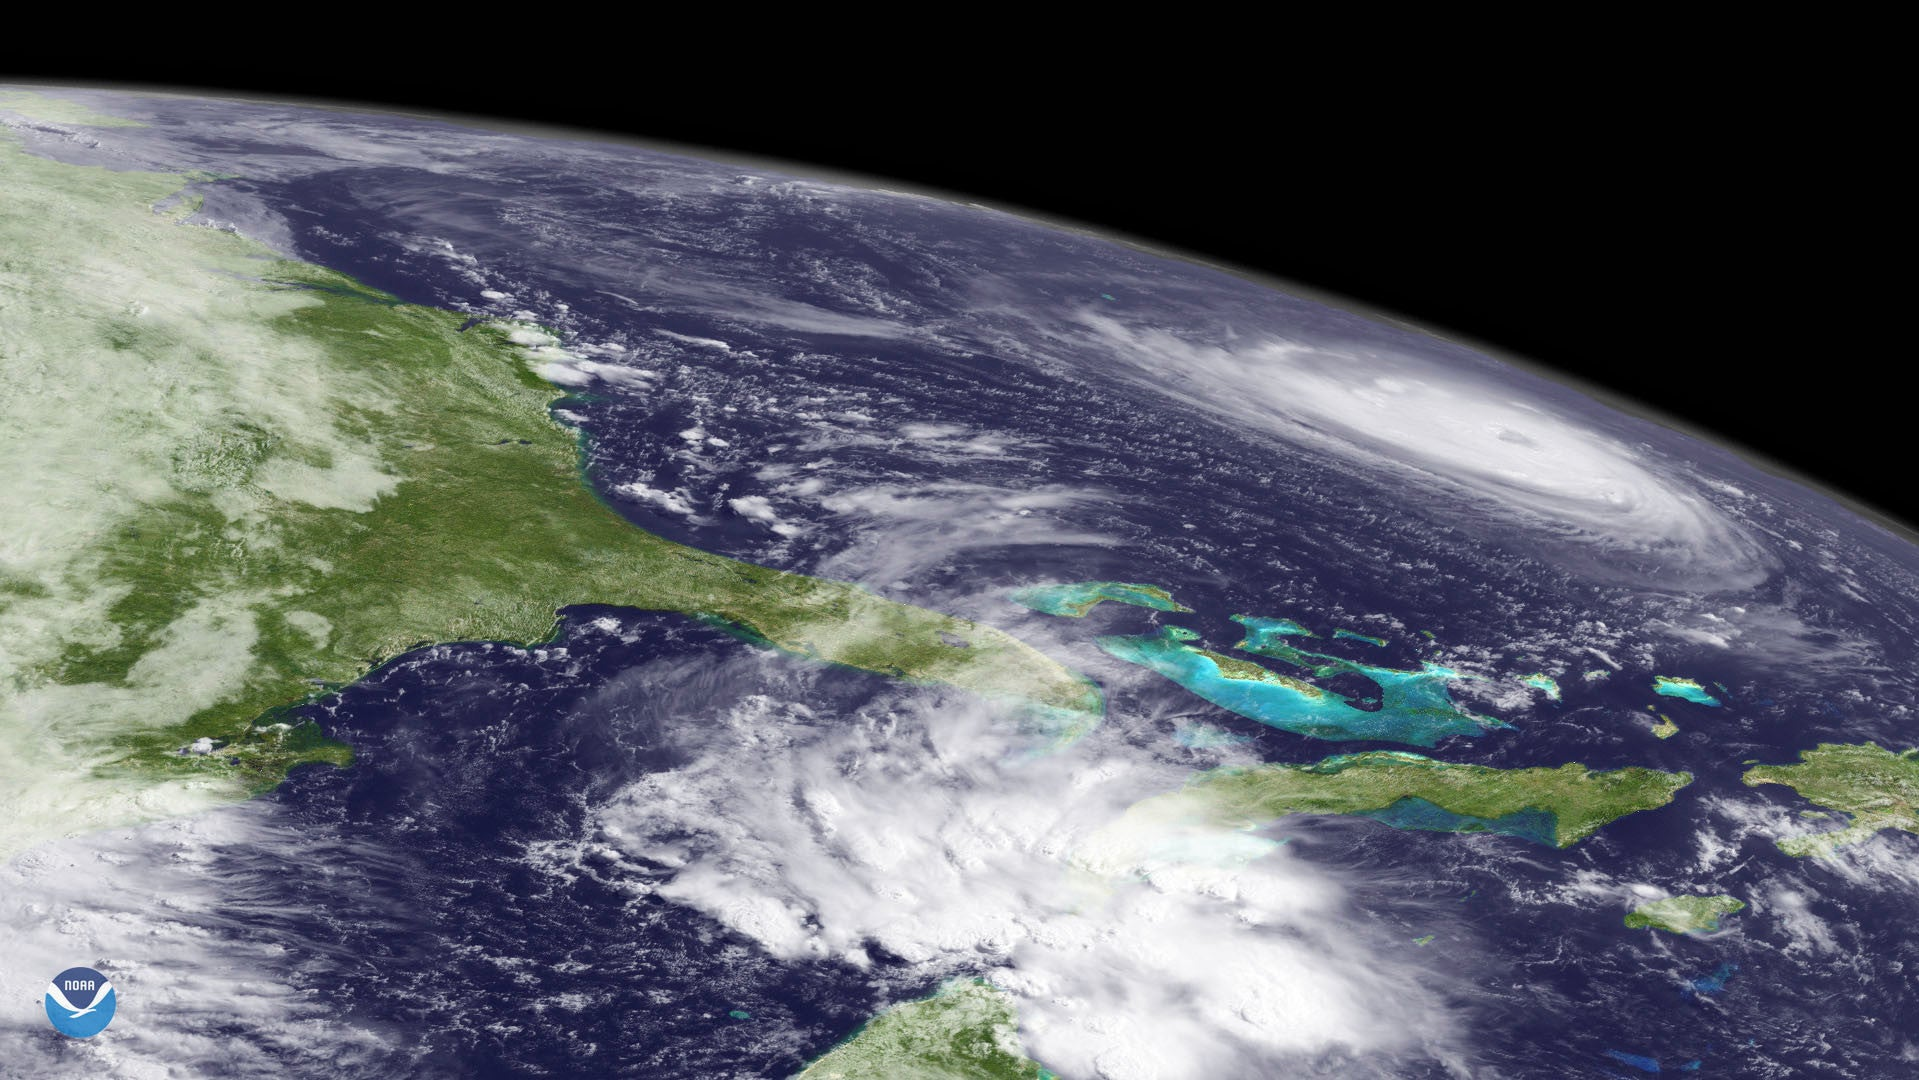 Learn More About Earth's Ecology And Weather With This New App